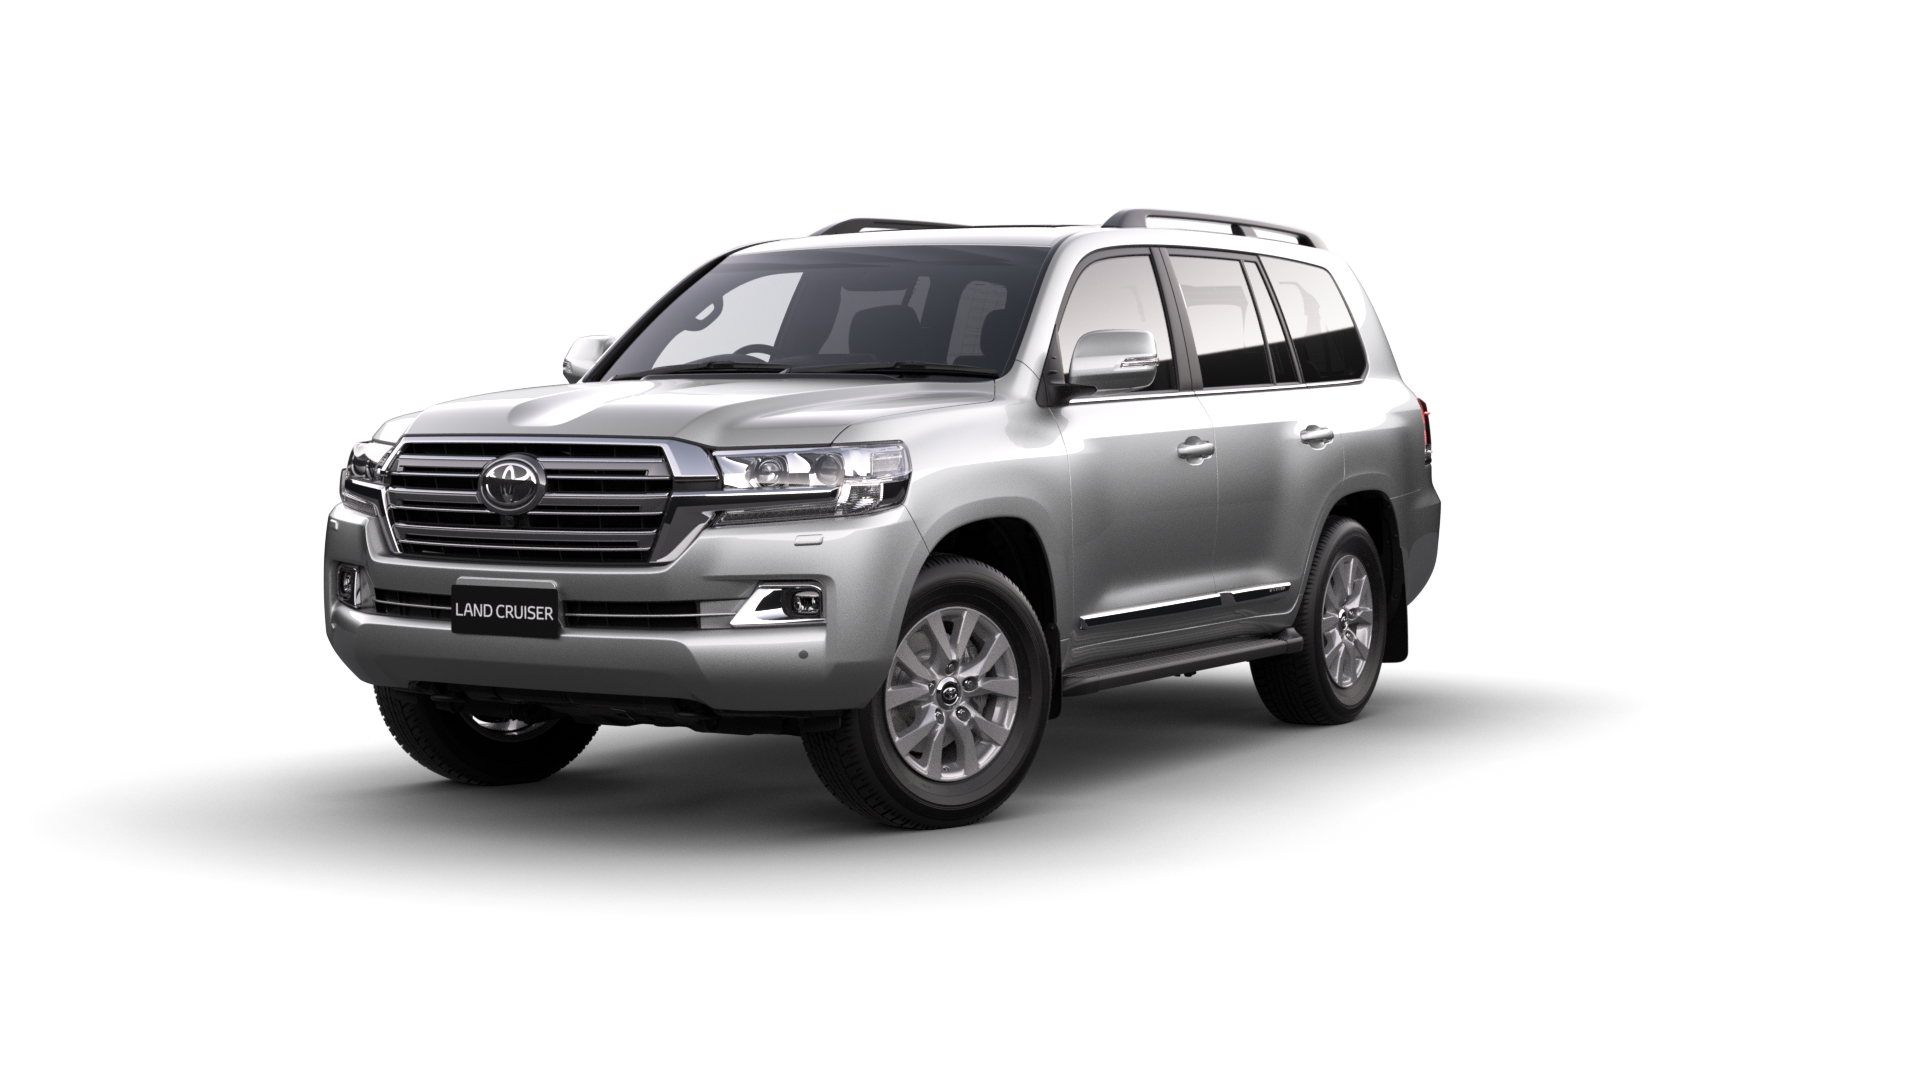 Toyota Land Cruiser 200s (07-)